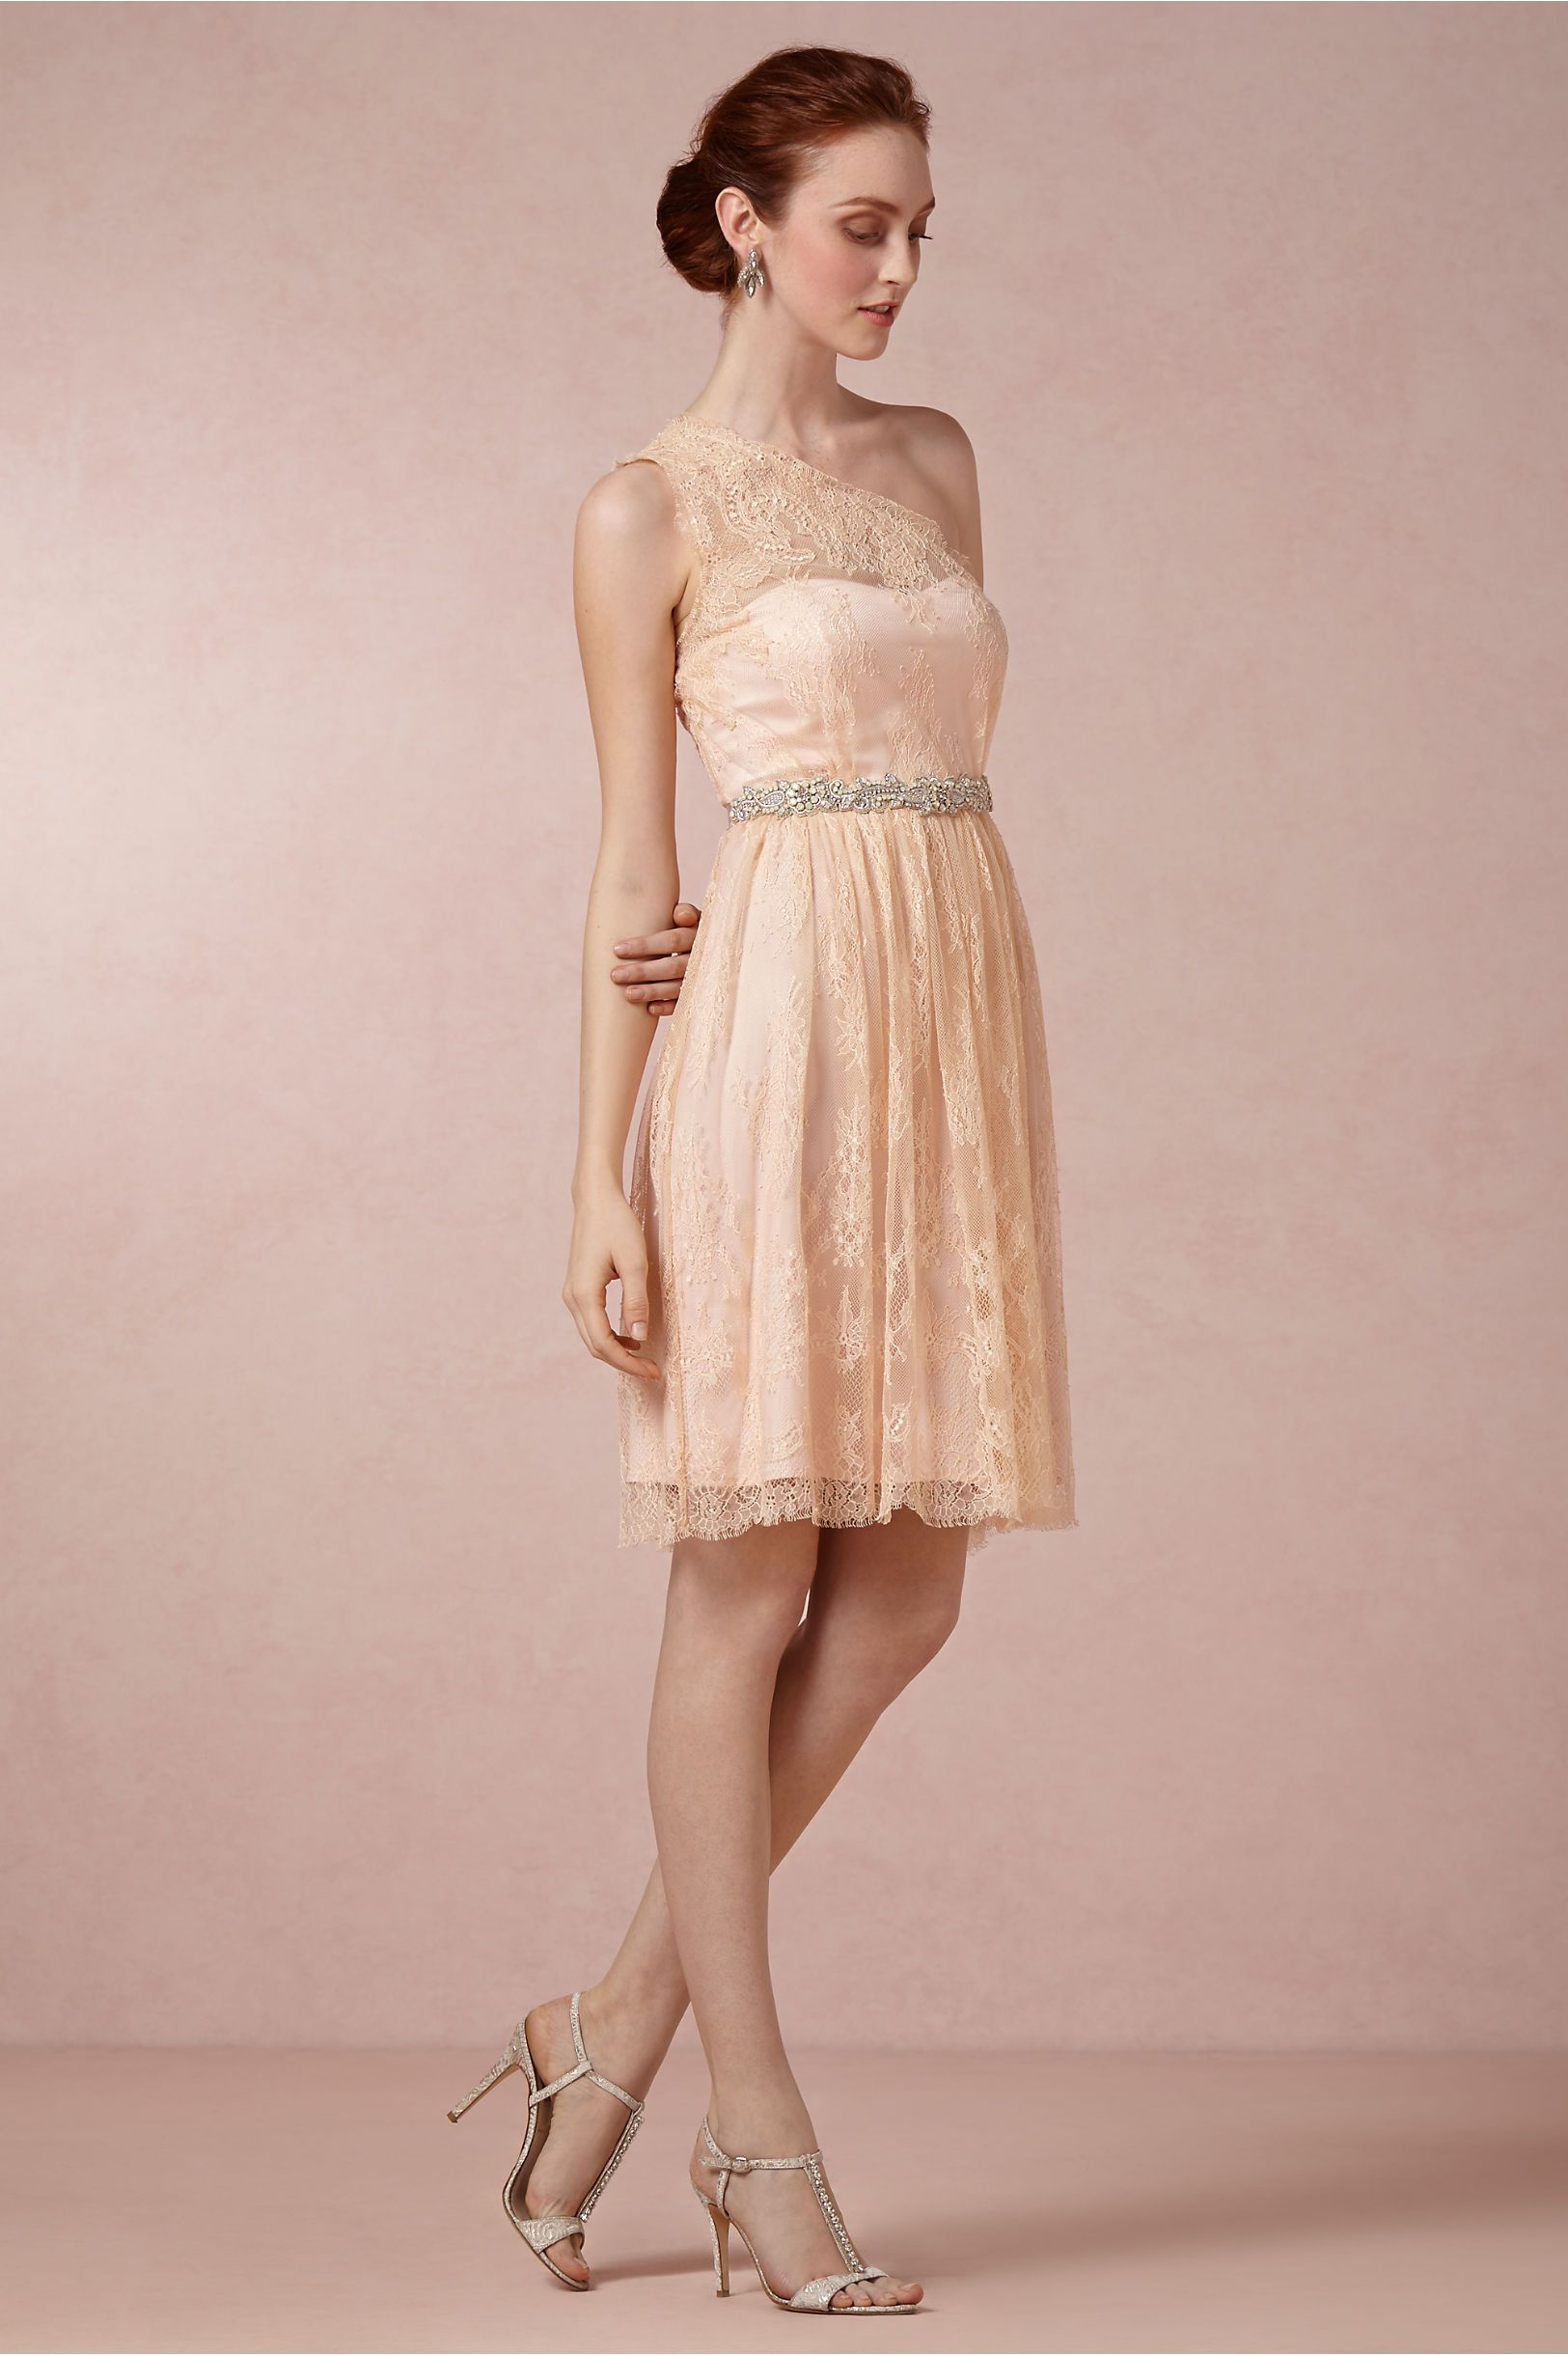 Ariel Dress from BHLDN | Stuff to Buy | Pinterest | Noche de bodas ...